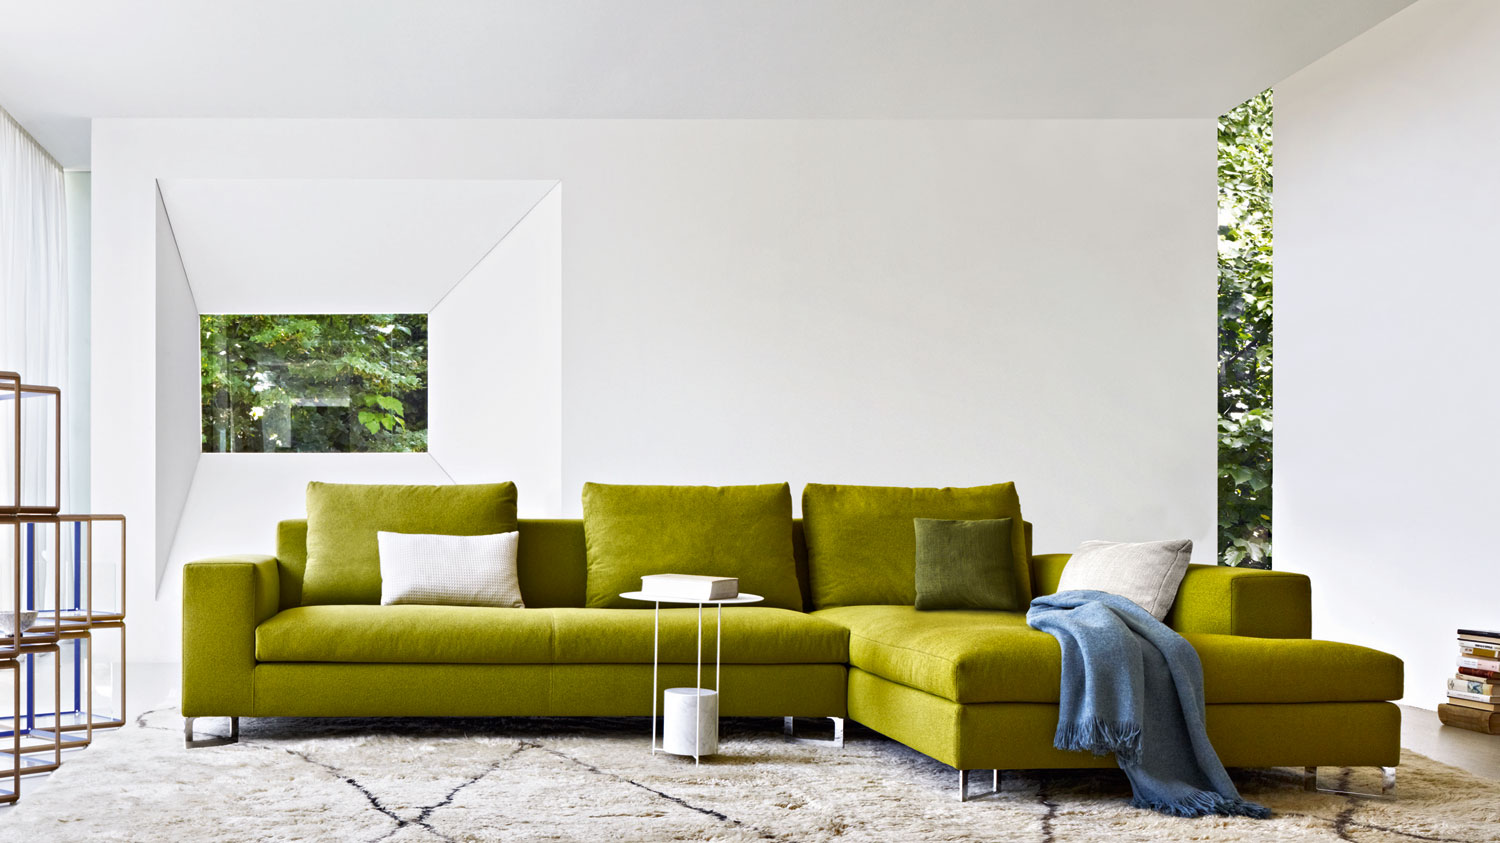 sofa chaise longue verde with Molteni C Large Sofa on Le Chien Savant Playful Dog Shaped Chair as well Emerald Green Sofas together with Silla Gamer Roja likewise Sofa Cama Italiana Erika C2x15241046 as well Divano Angolare Misure.